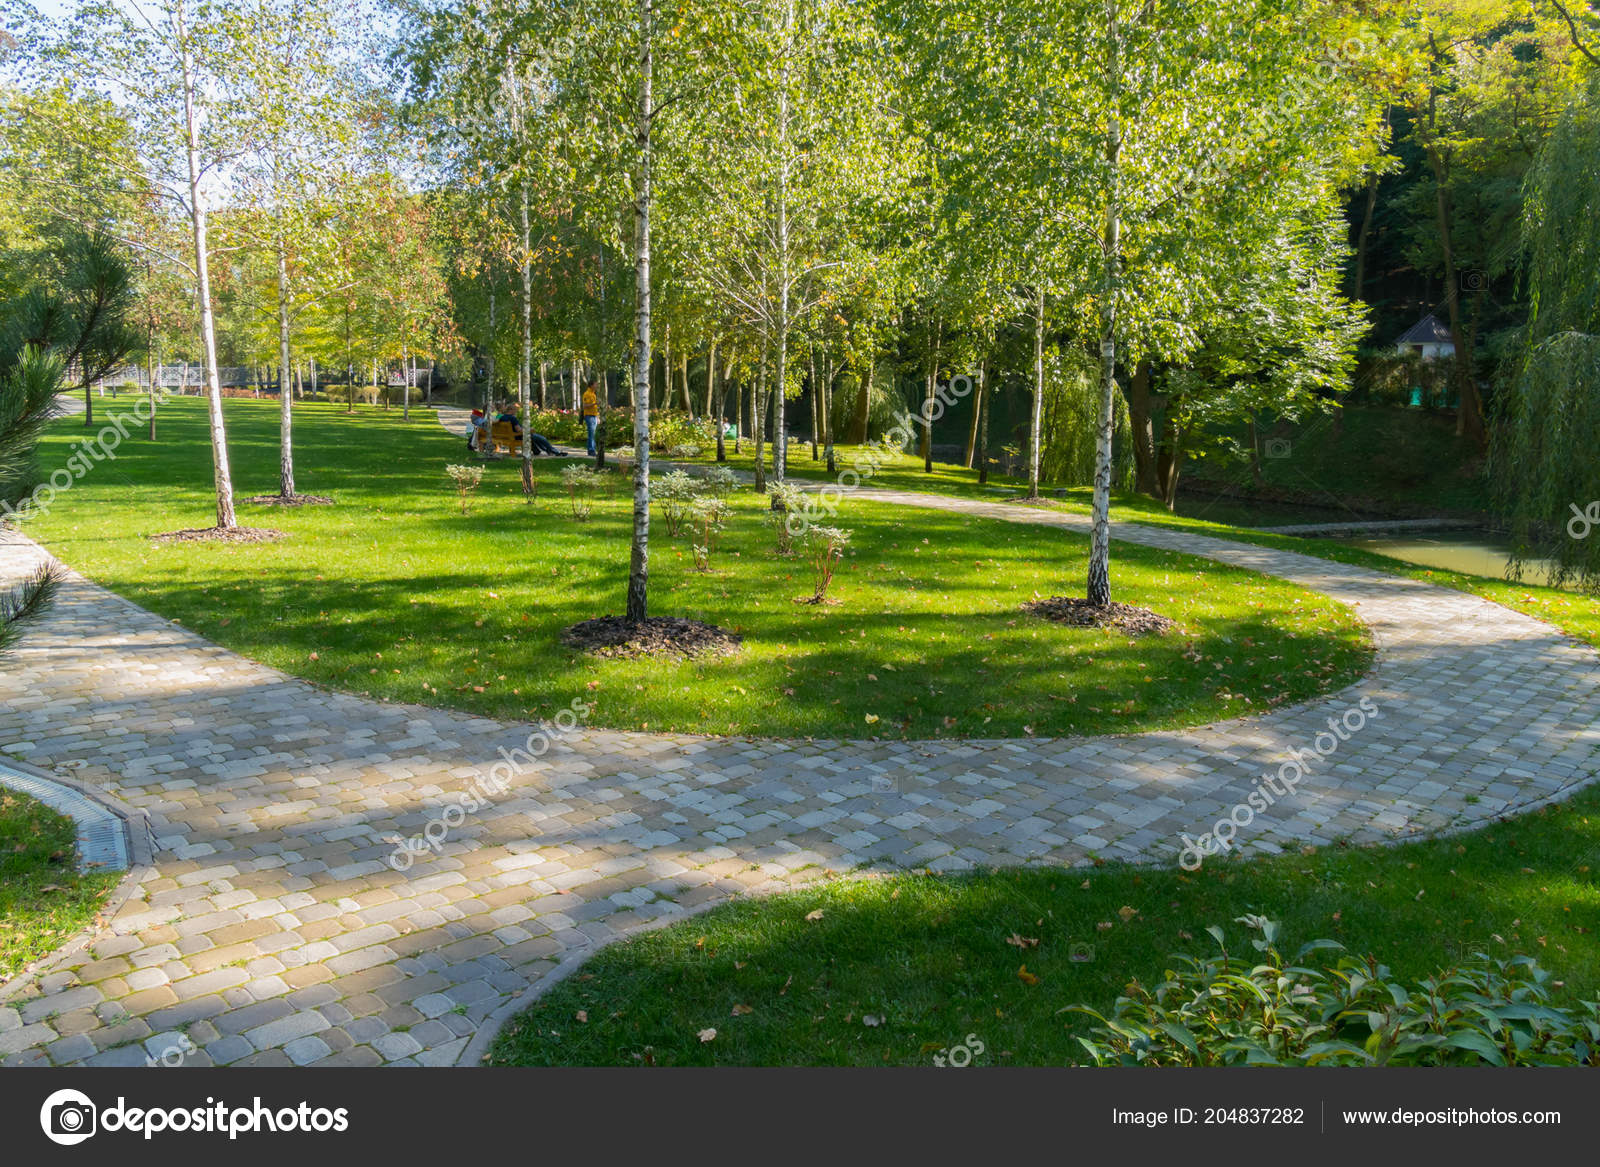 Rest In A Park On A Bench In The Shadow Of Low Young Birches Growing